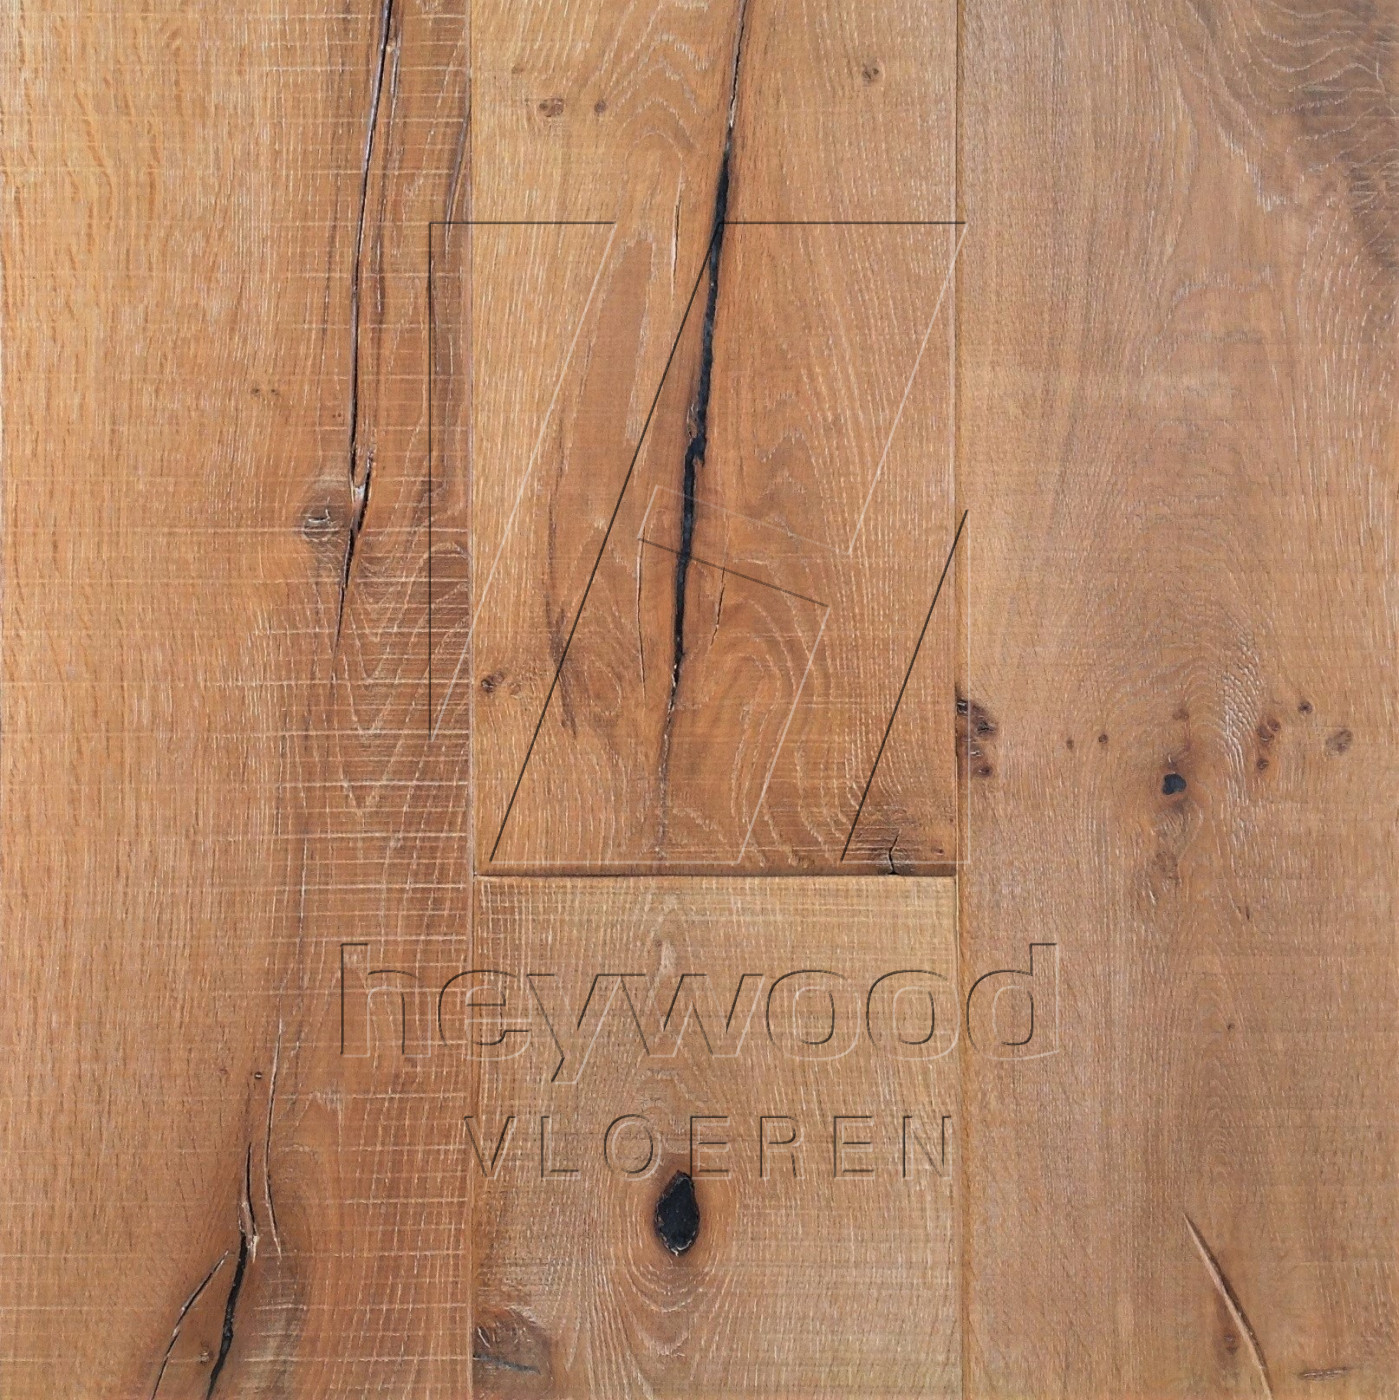 Knotting Hill Plank 'Dune' in Aged Knotting Hill Surface of Aged Hardwood Floors